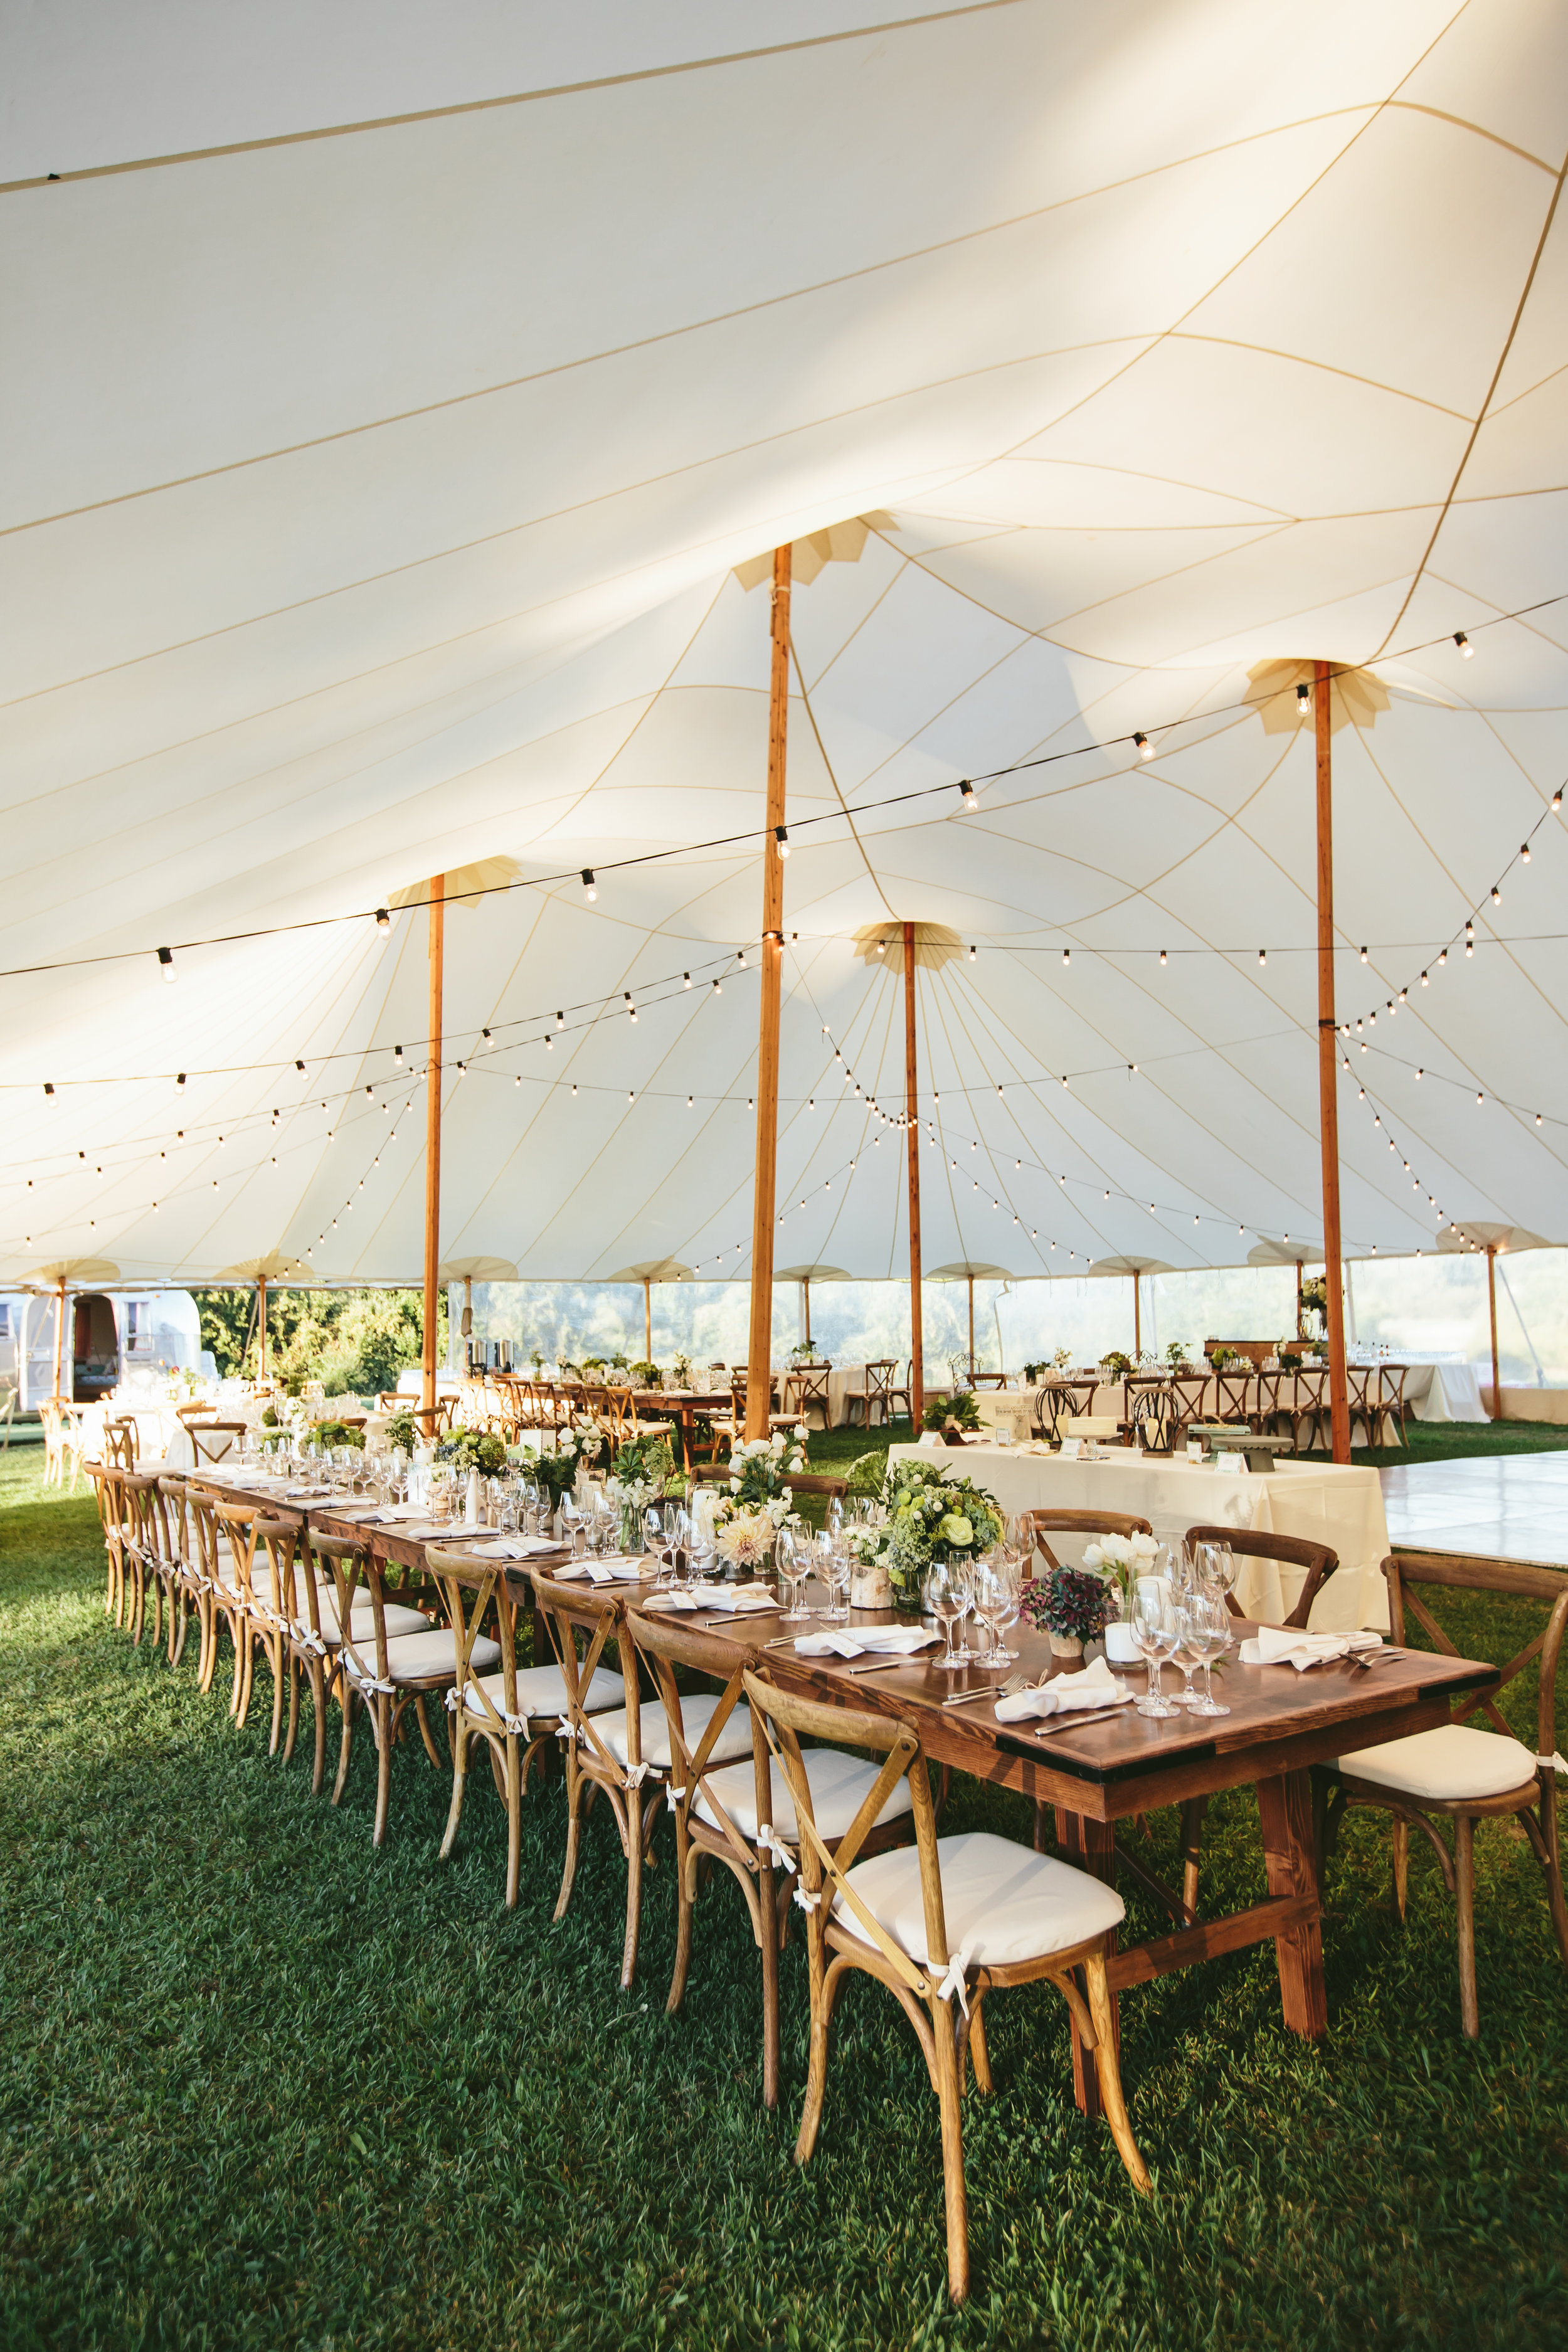 hudson-valley-farm-weddings-pioneer-farm-weddings-warwick-ny-beautiful-outdoor-reception-area-tent.jpg